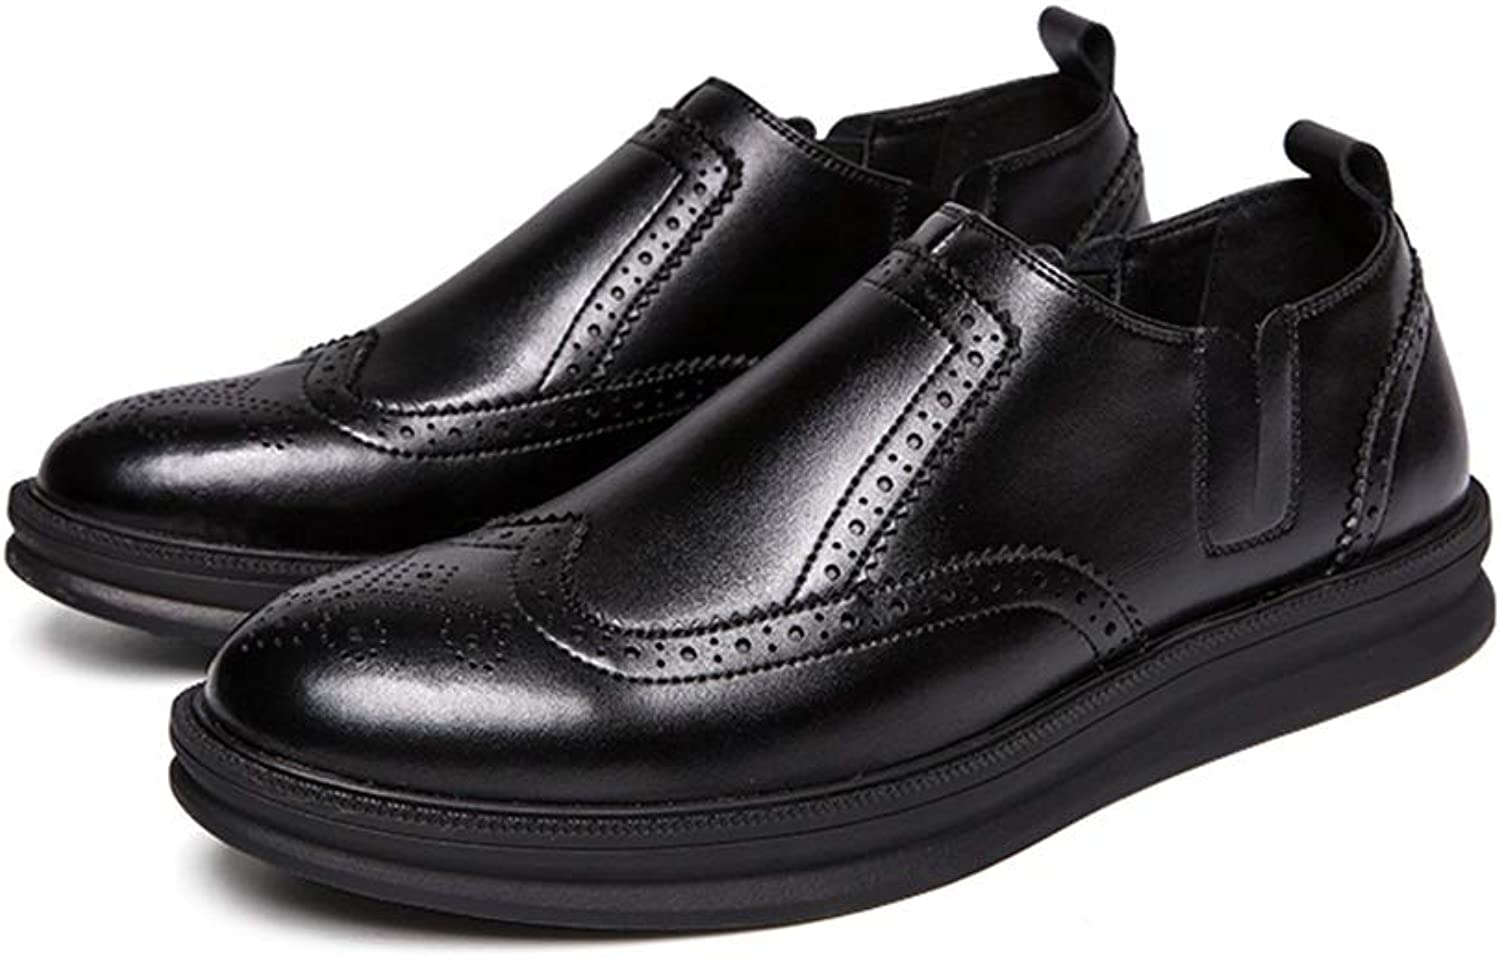 Business Oxford Casual Classic Carvings British Style Brogue shoes for Men